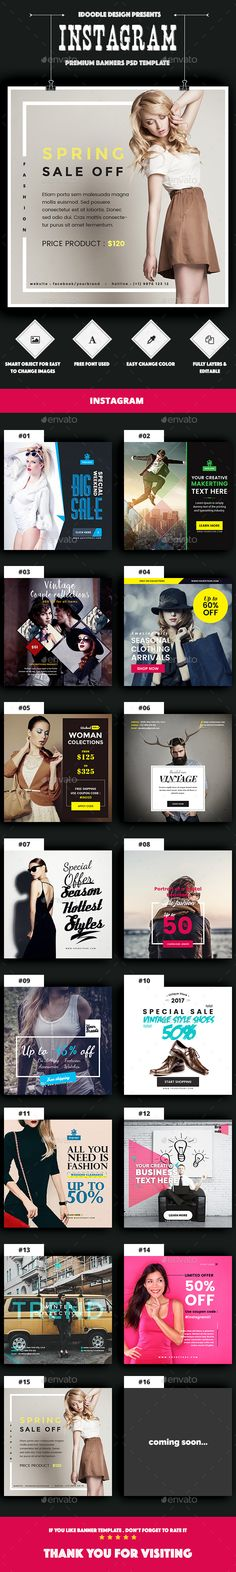 Promotion Instagram Banners Ad - 34 PSD [Update New Size]